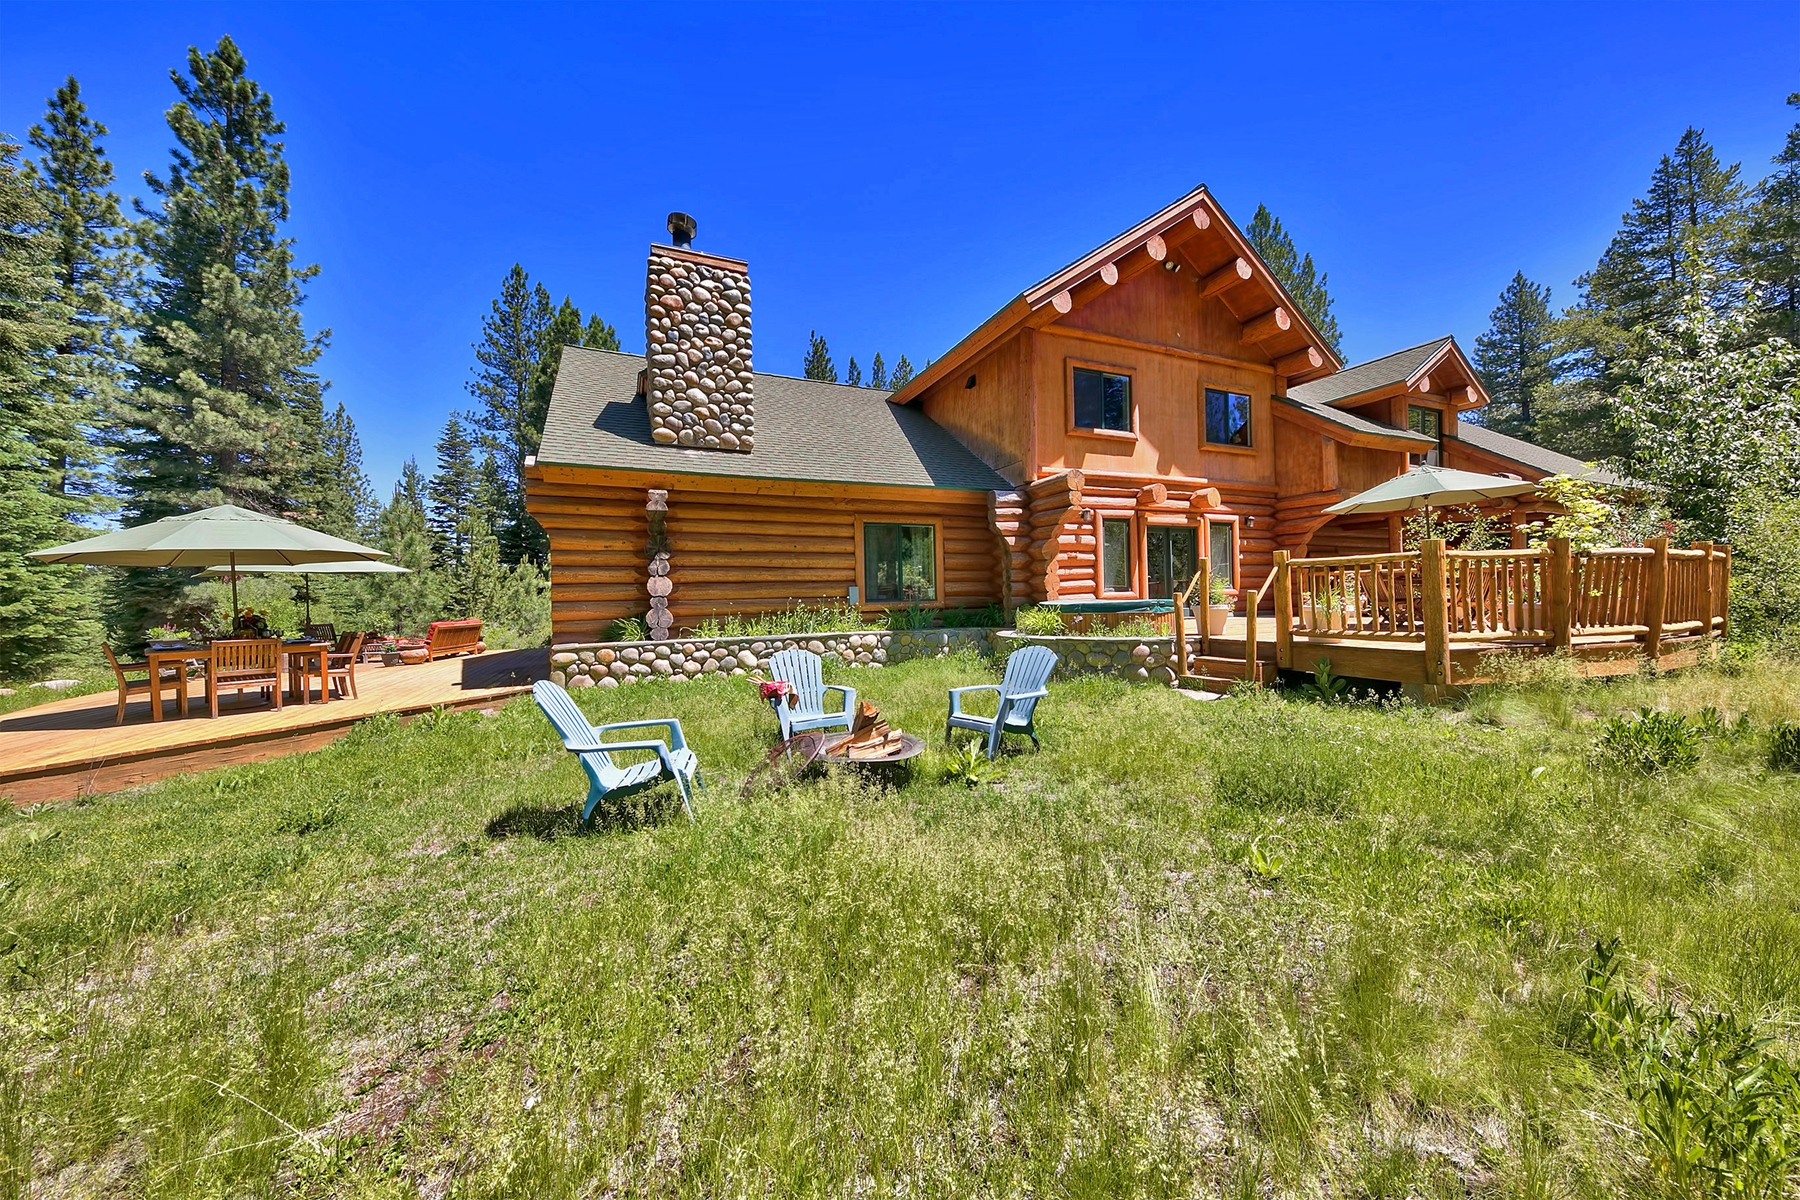 Property 为 销售 在 11979 Stony Creek Court, Truckee CA 96161 11979 Stony Creek Court 特拉基, 加利福尼亚州 96161 美国